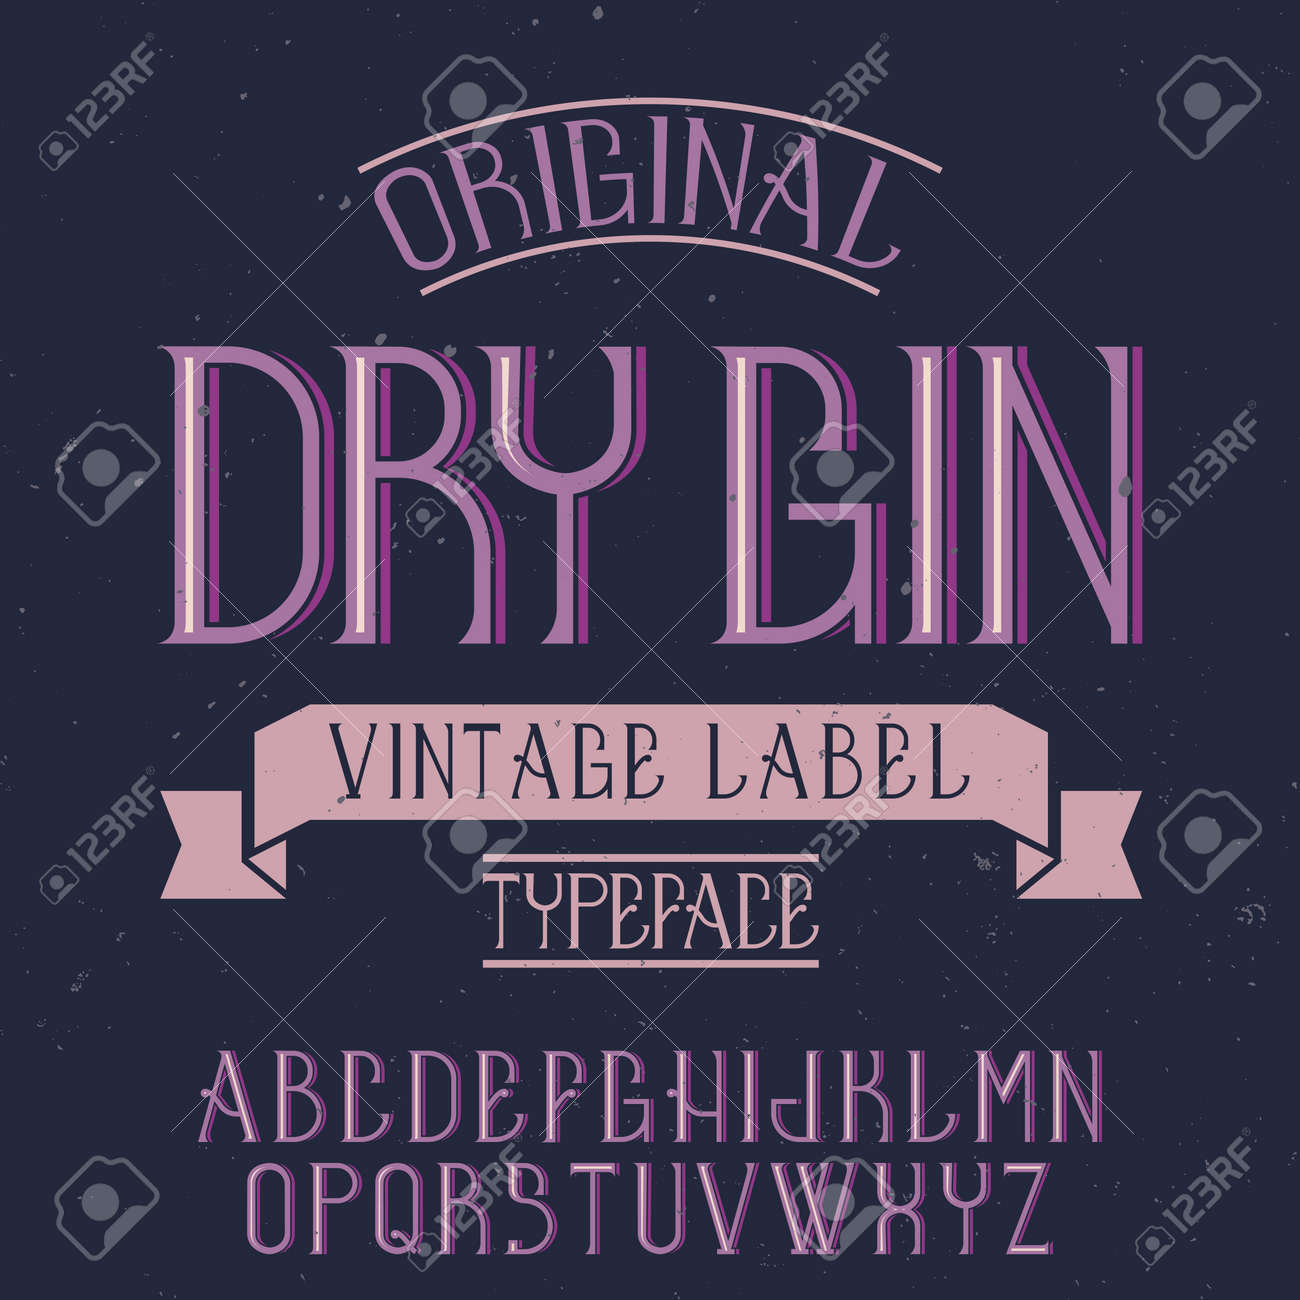 Vintage label font named Dry Gin. Good to use in any creative labels. - 168273472